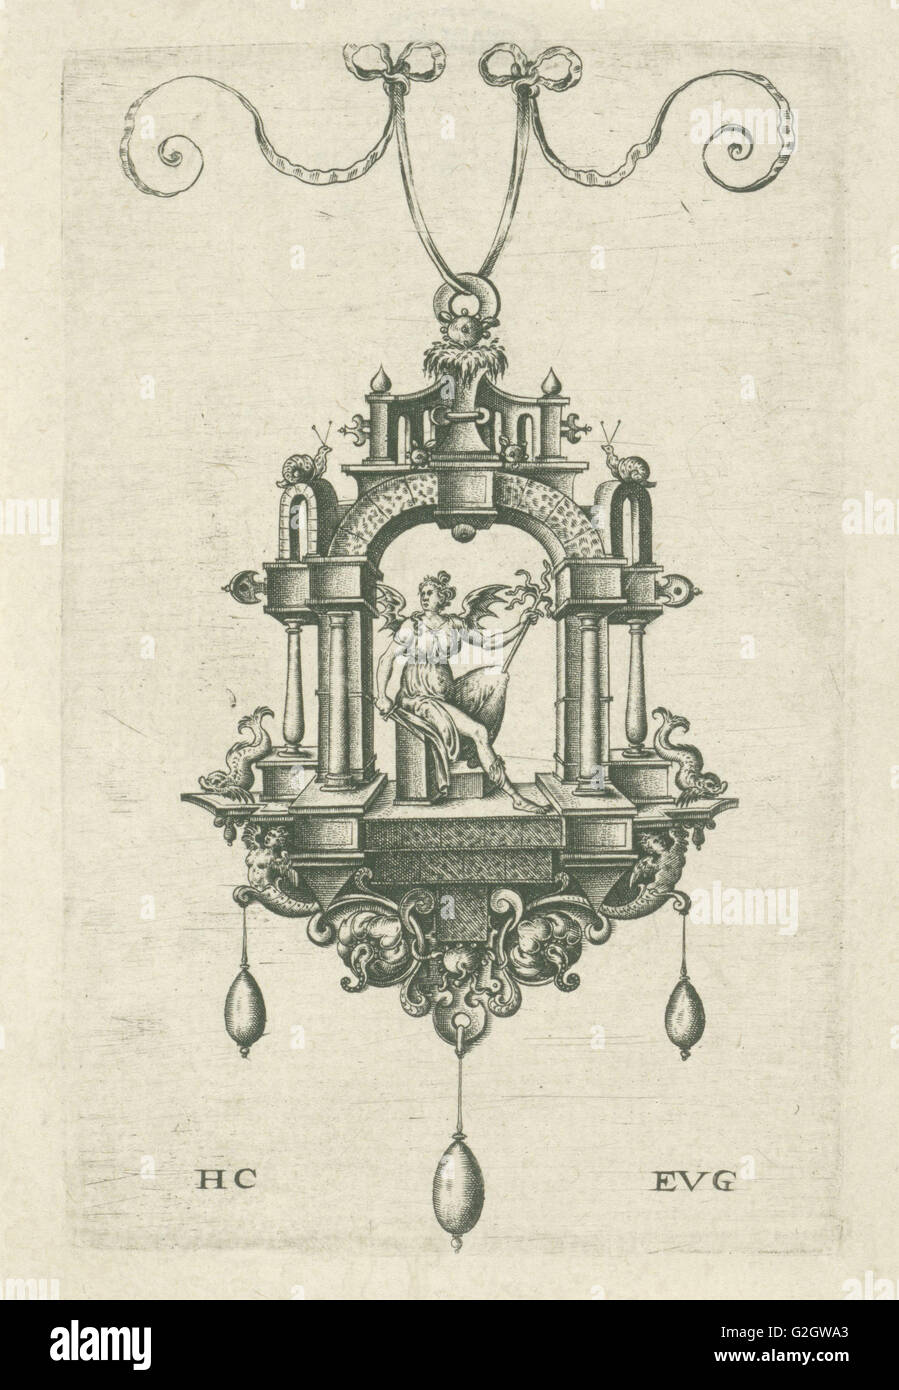 Pendant (pendeloque) with a winged woman with snake sword and stick in the hands. Hans Collaert (I), Monogrammist - Stock Image